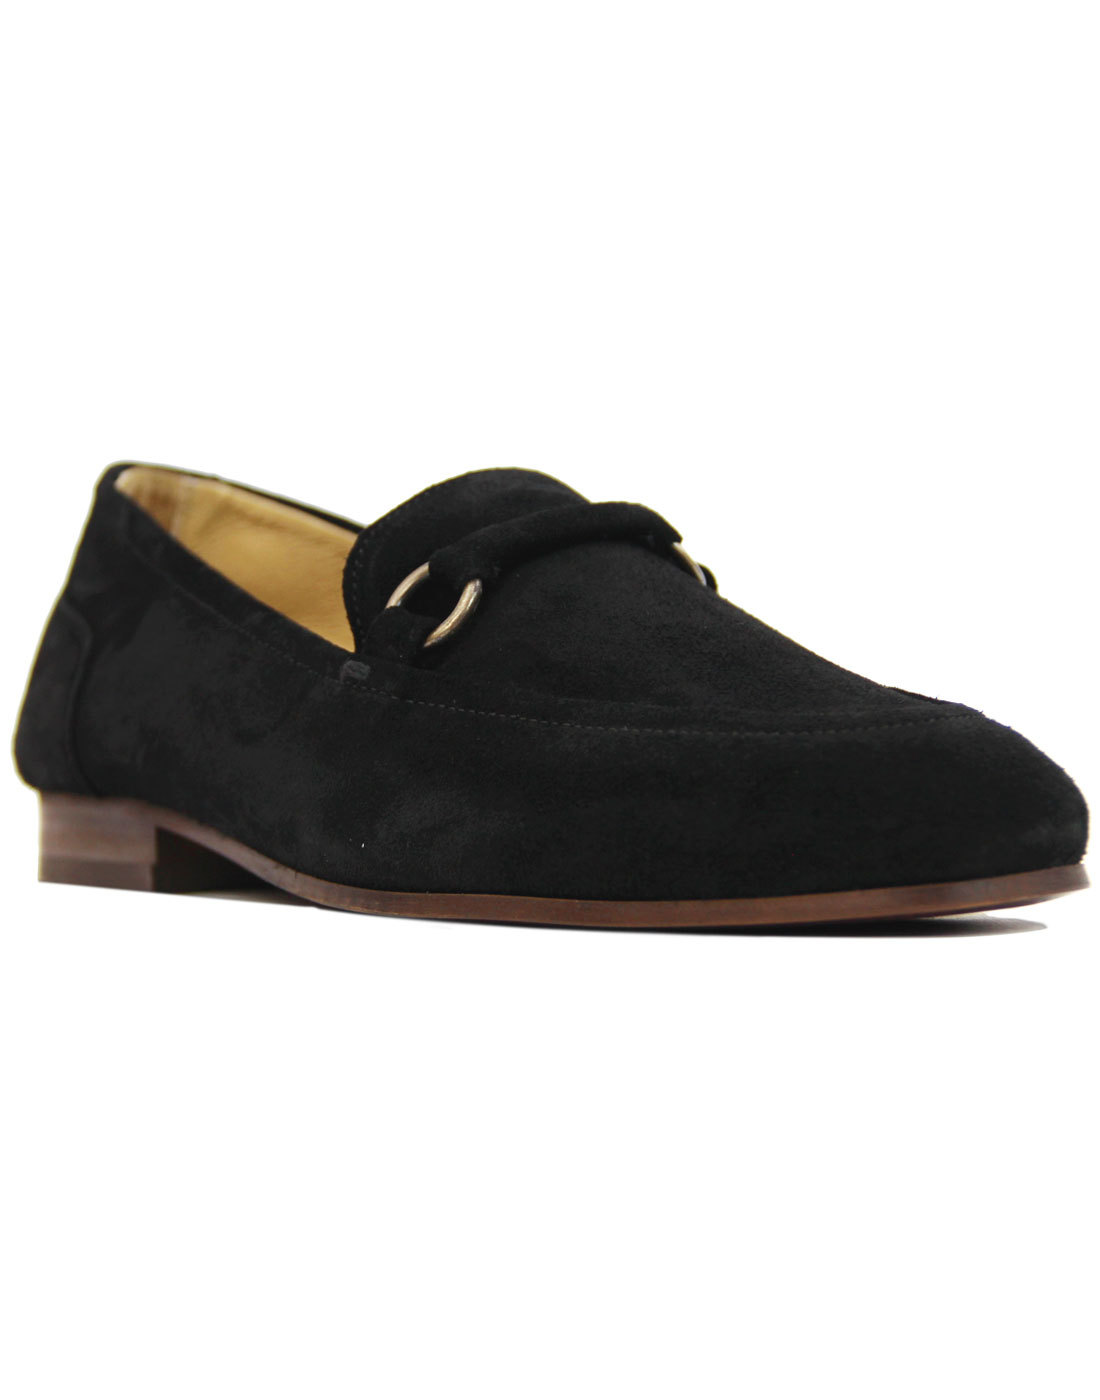 Renzo H by Hudson Mod Handcrafted Suede Loafers